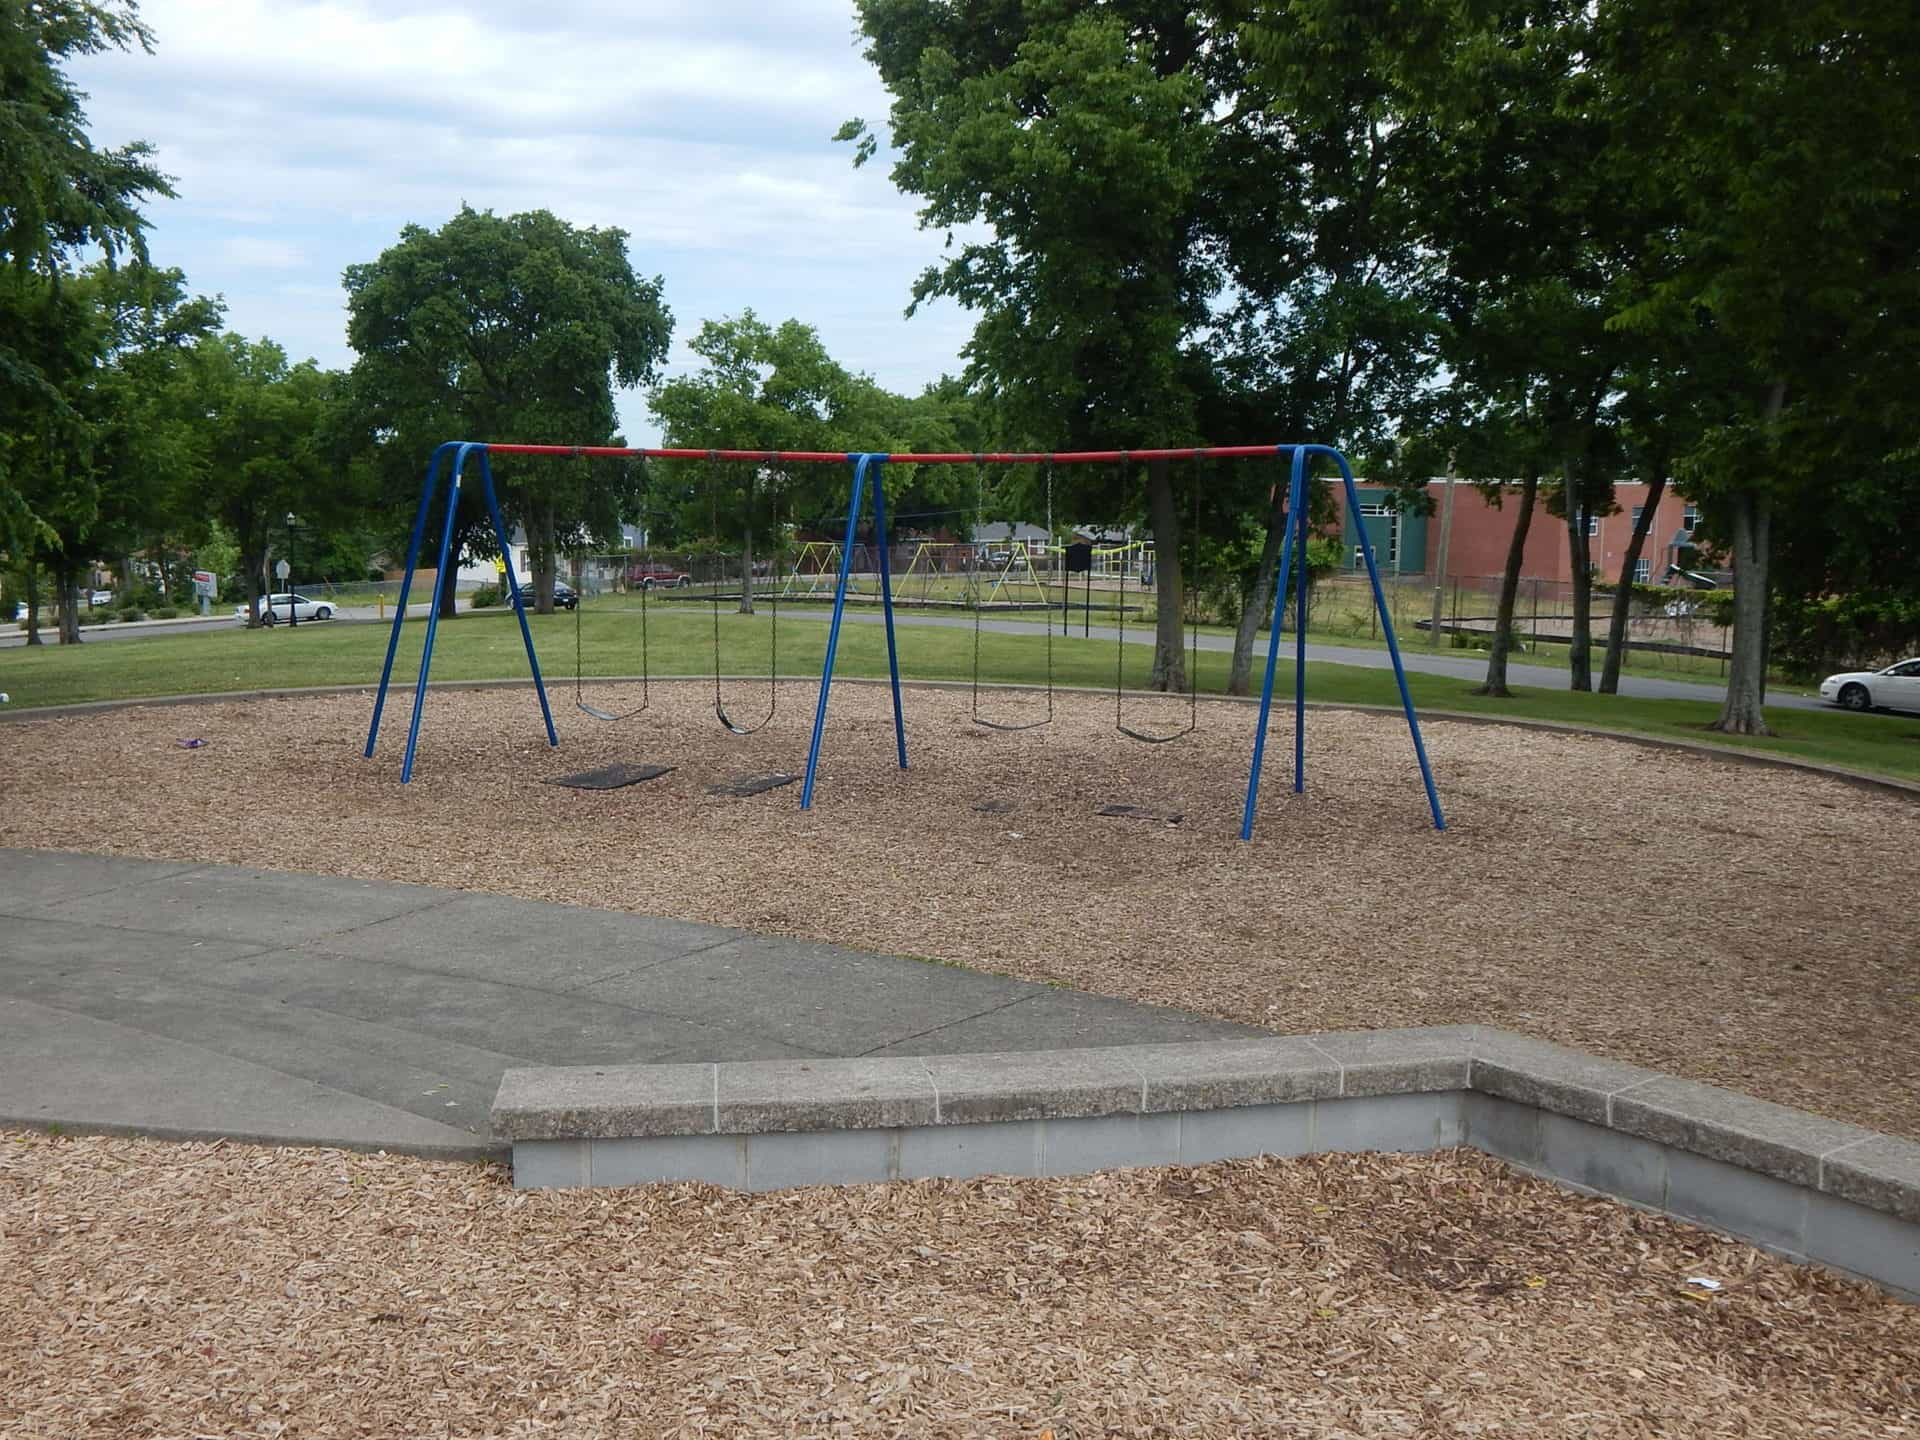 South Inglewood Park and Community Center - Swings